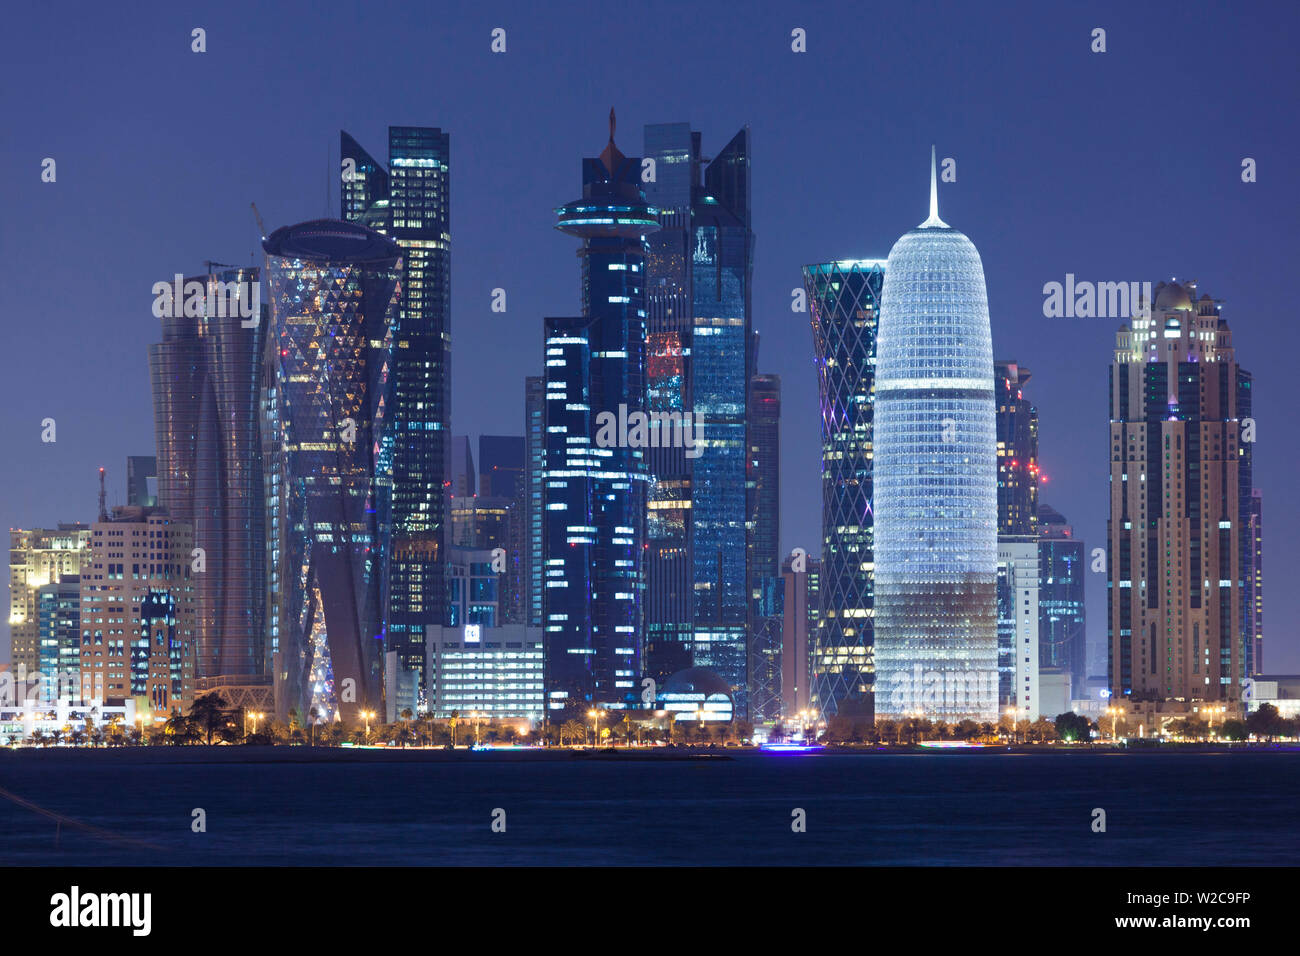 Qatar, Doha, Doha Bay, West Bay skyscrapers, dusk, with Burj Qatar Tower Stock Photo